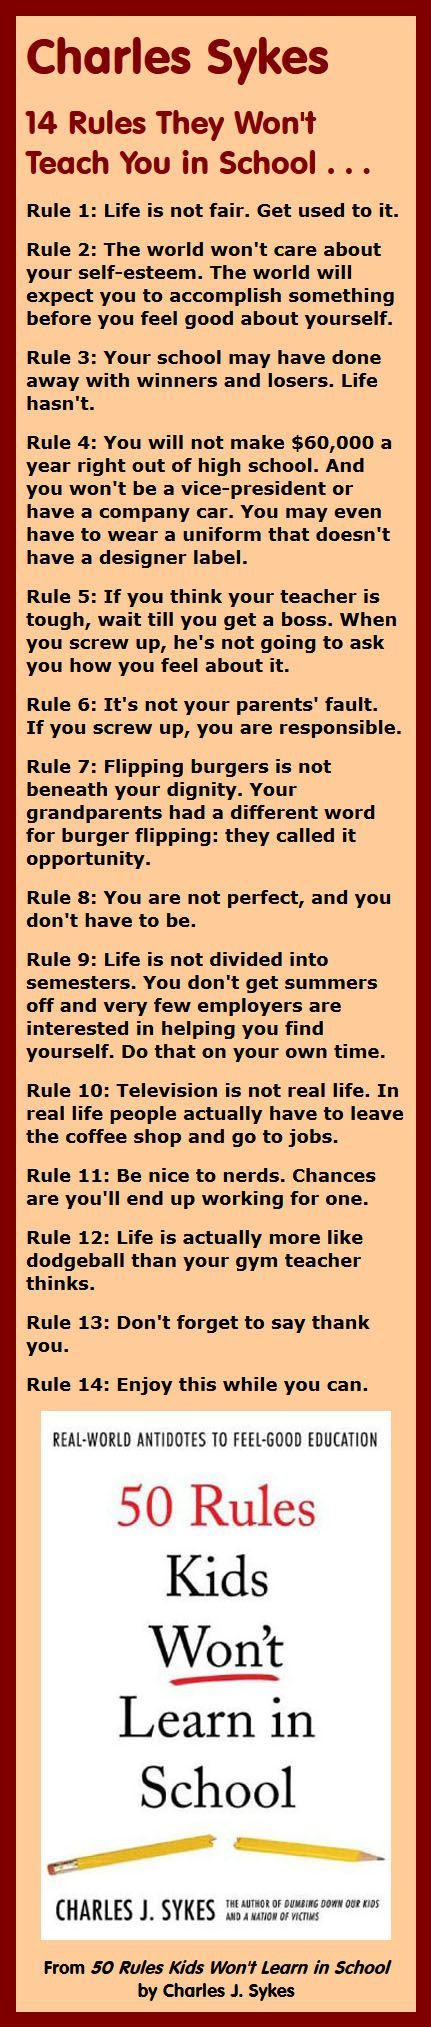 Here are the top 14 rules of life excerpted from 50 Rules Kids Won't Learn in School by Charles Sykes